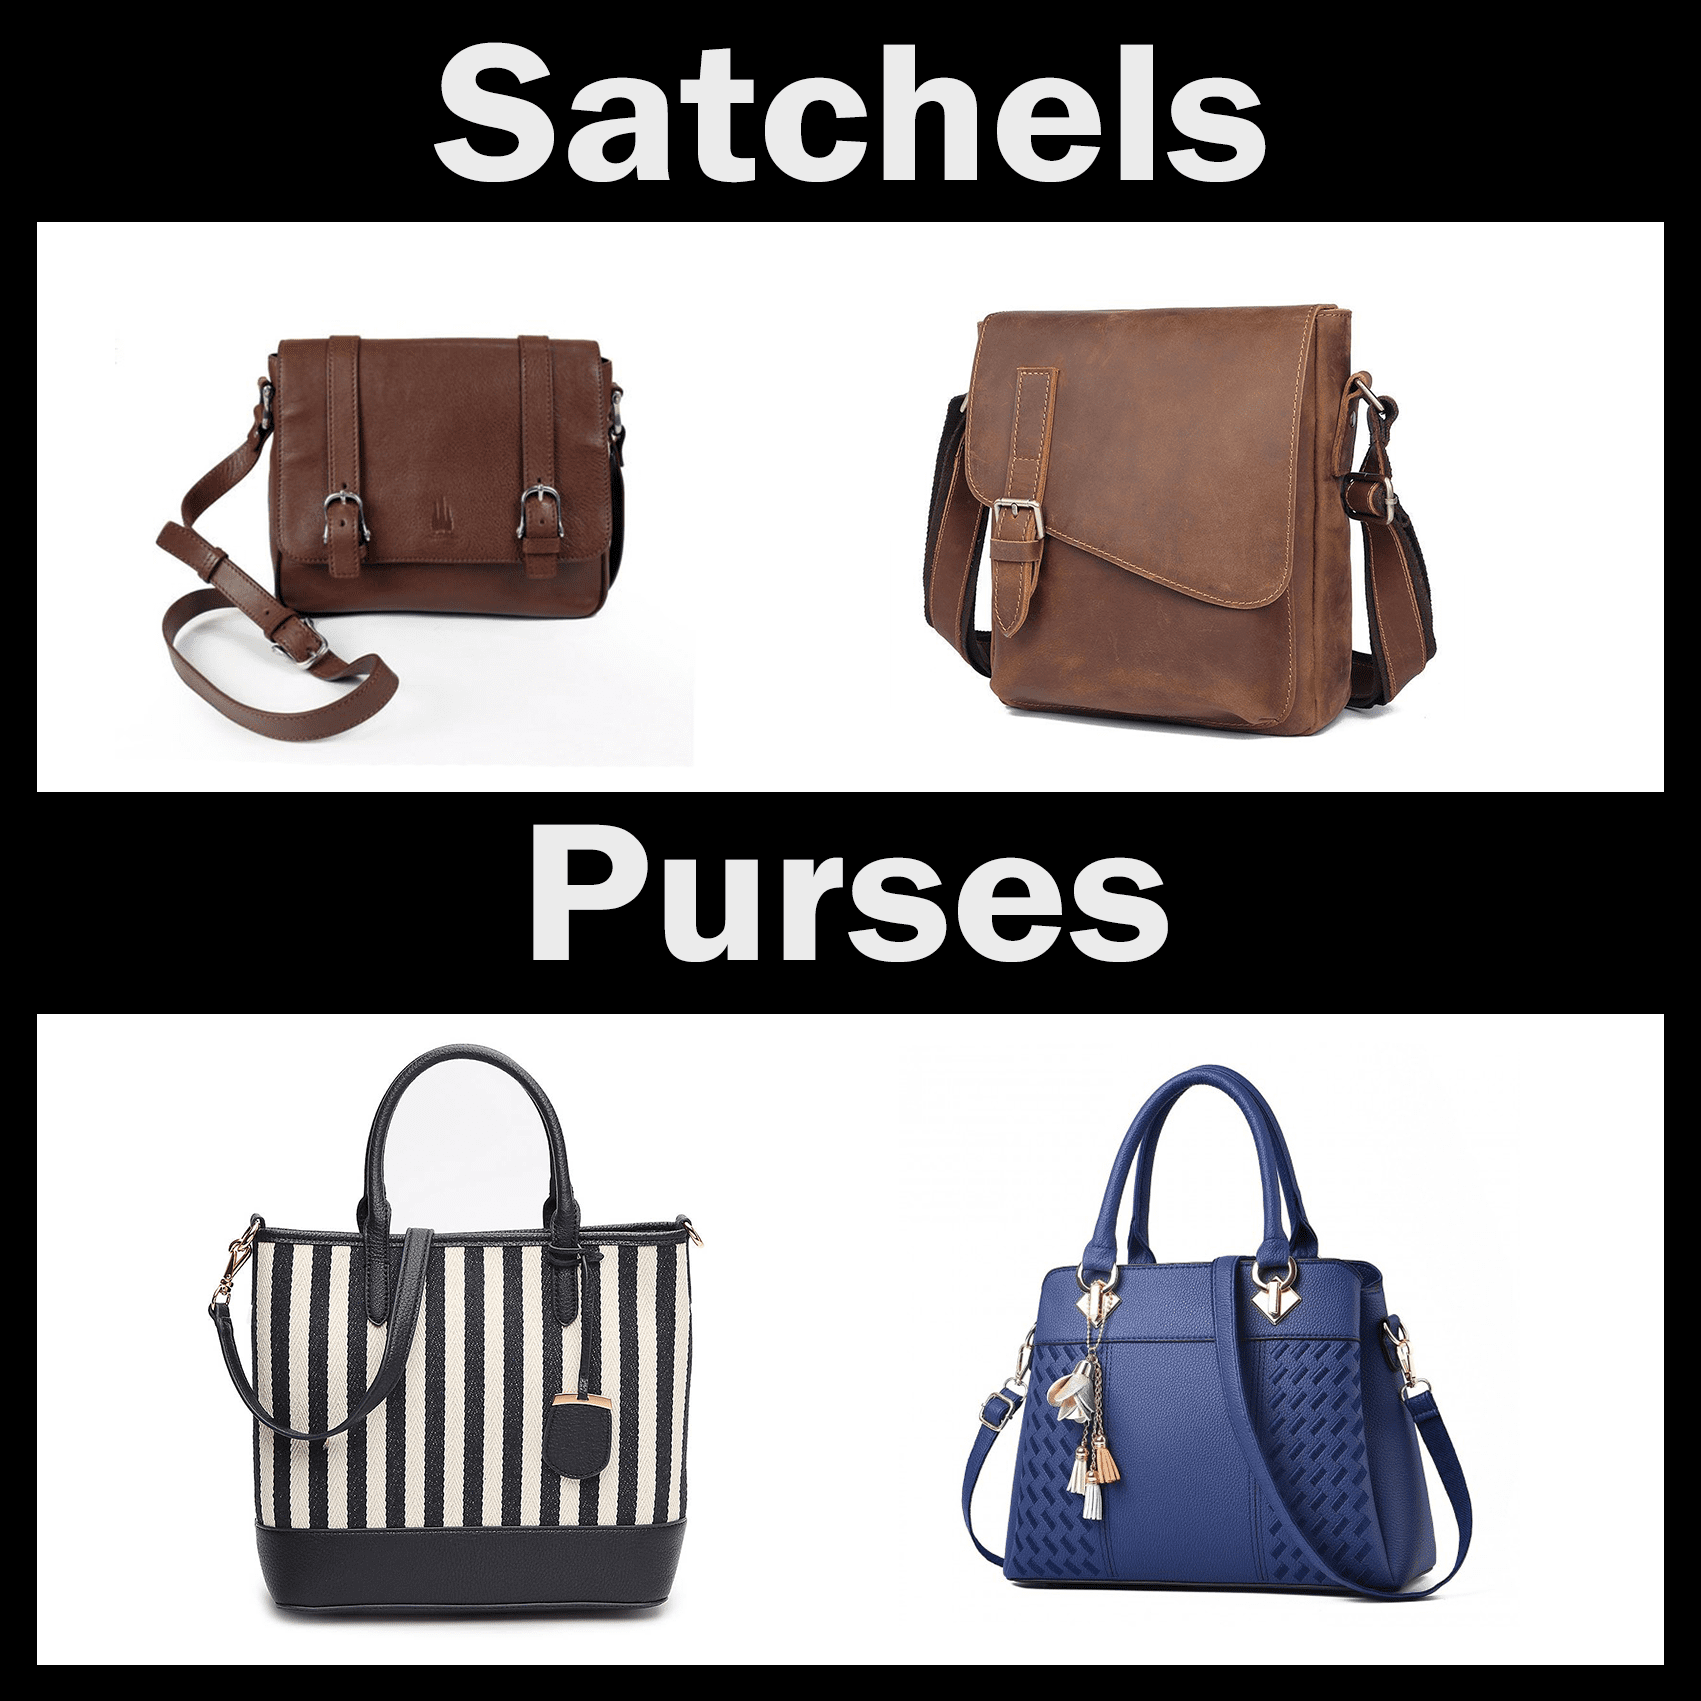 Fit any satchel or purse!